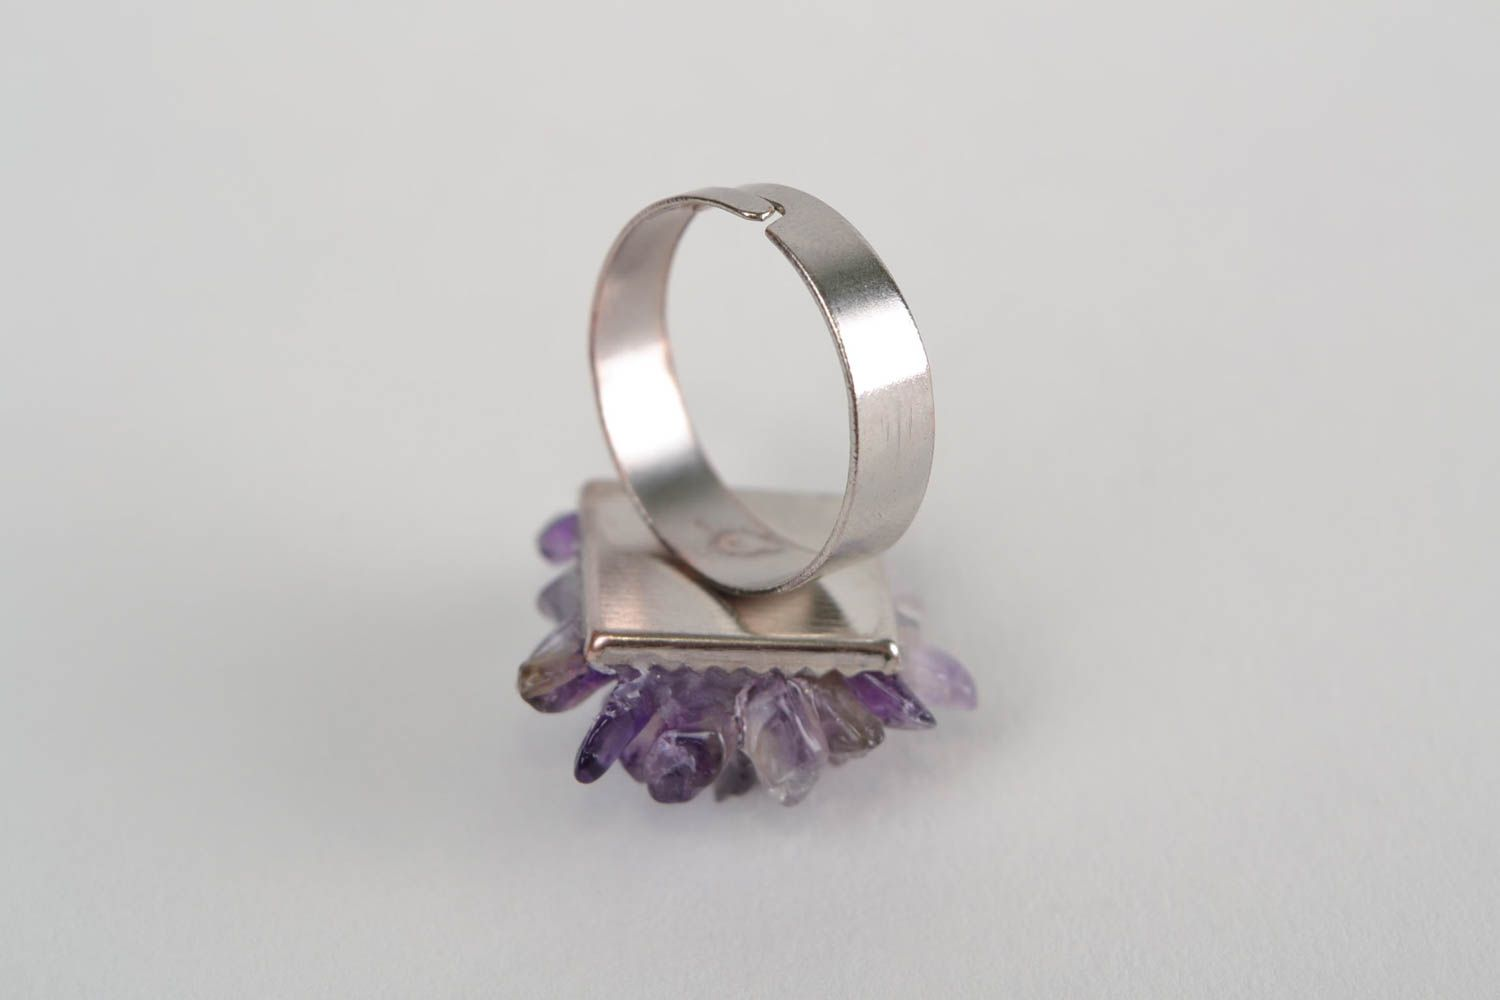 Square-shaped ring with natural stone amethyst beautiful handmade accessory photo 5